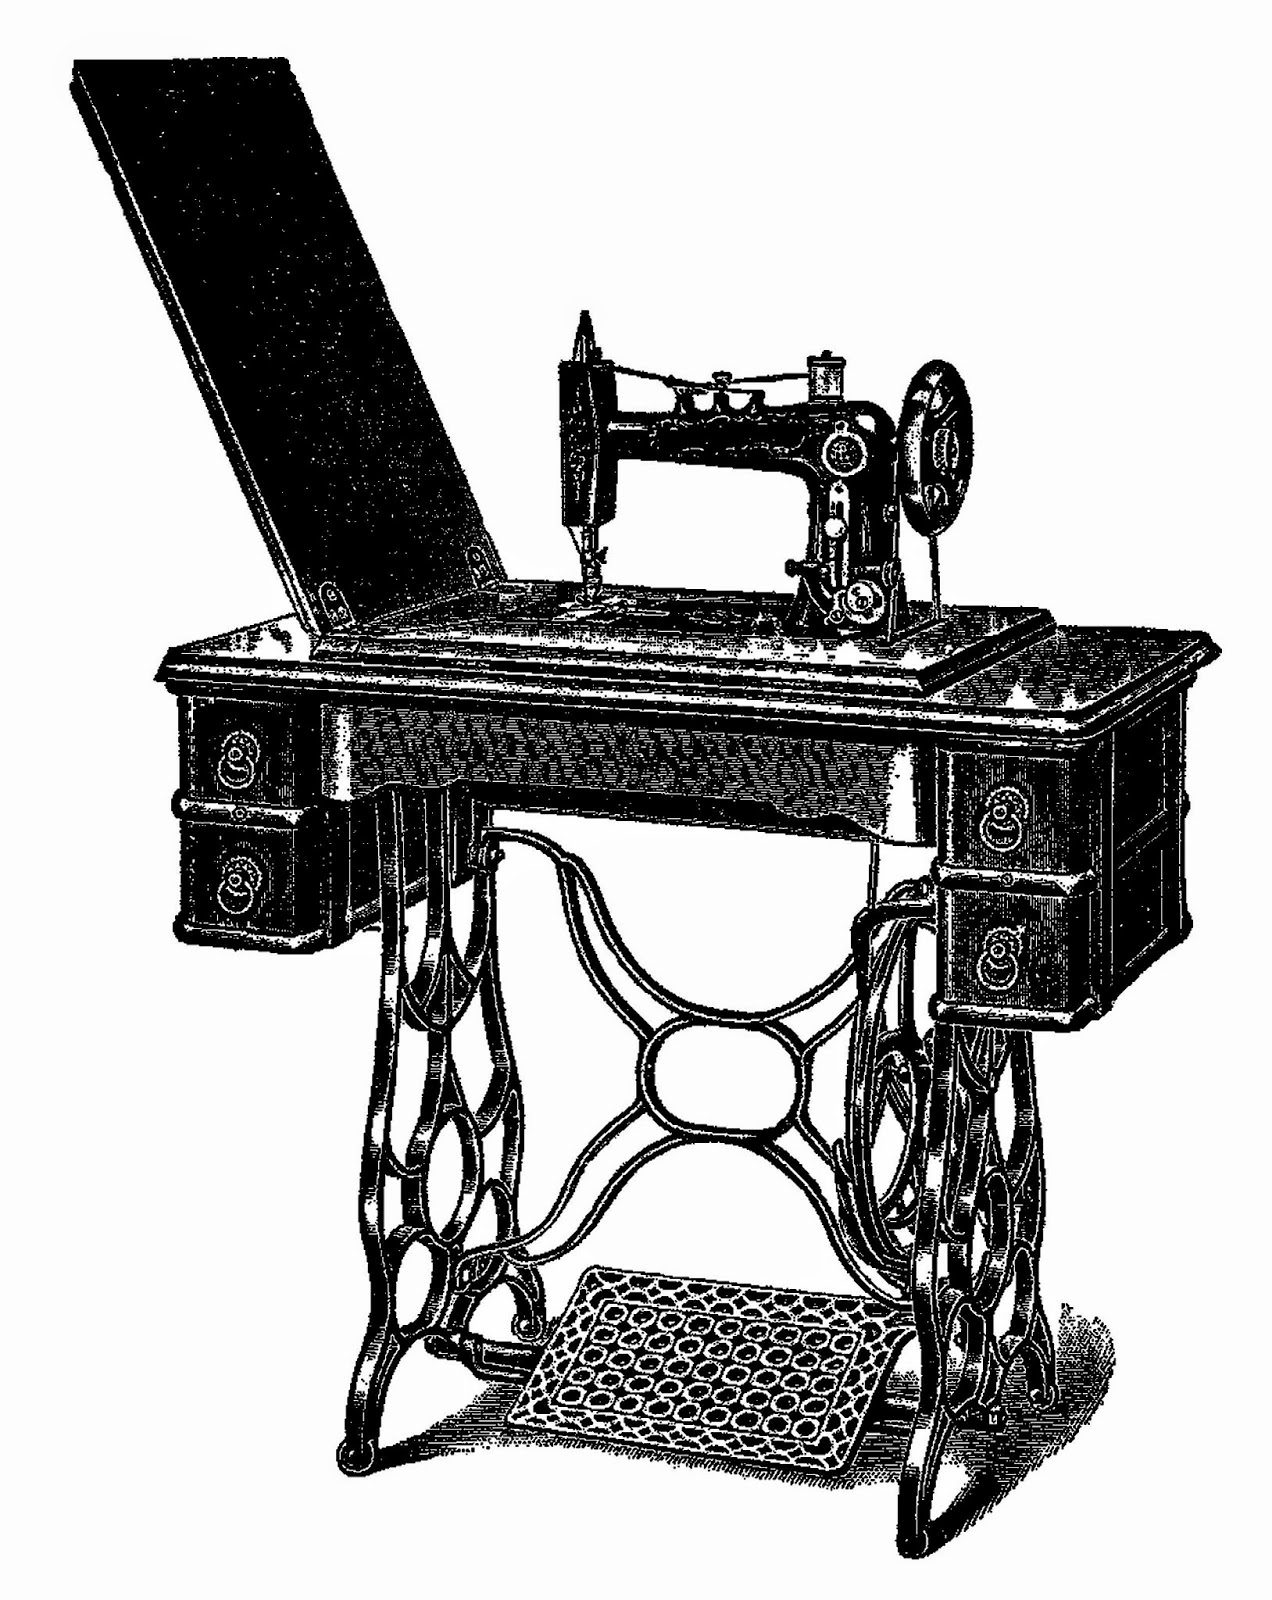 Sewing Machine clipart vintage #2